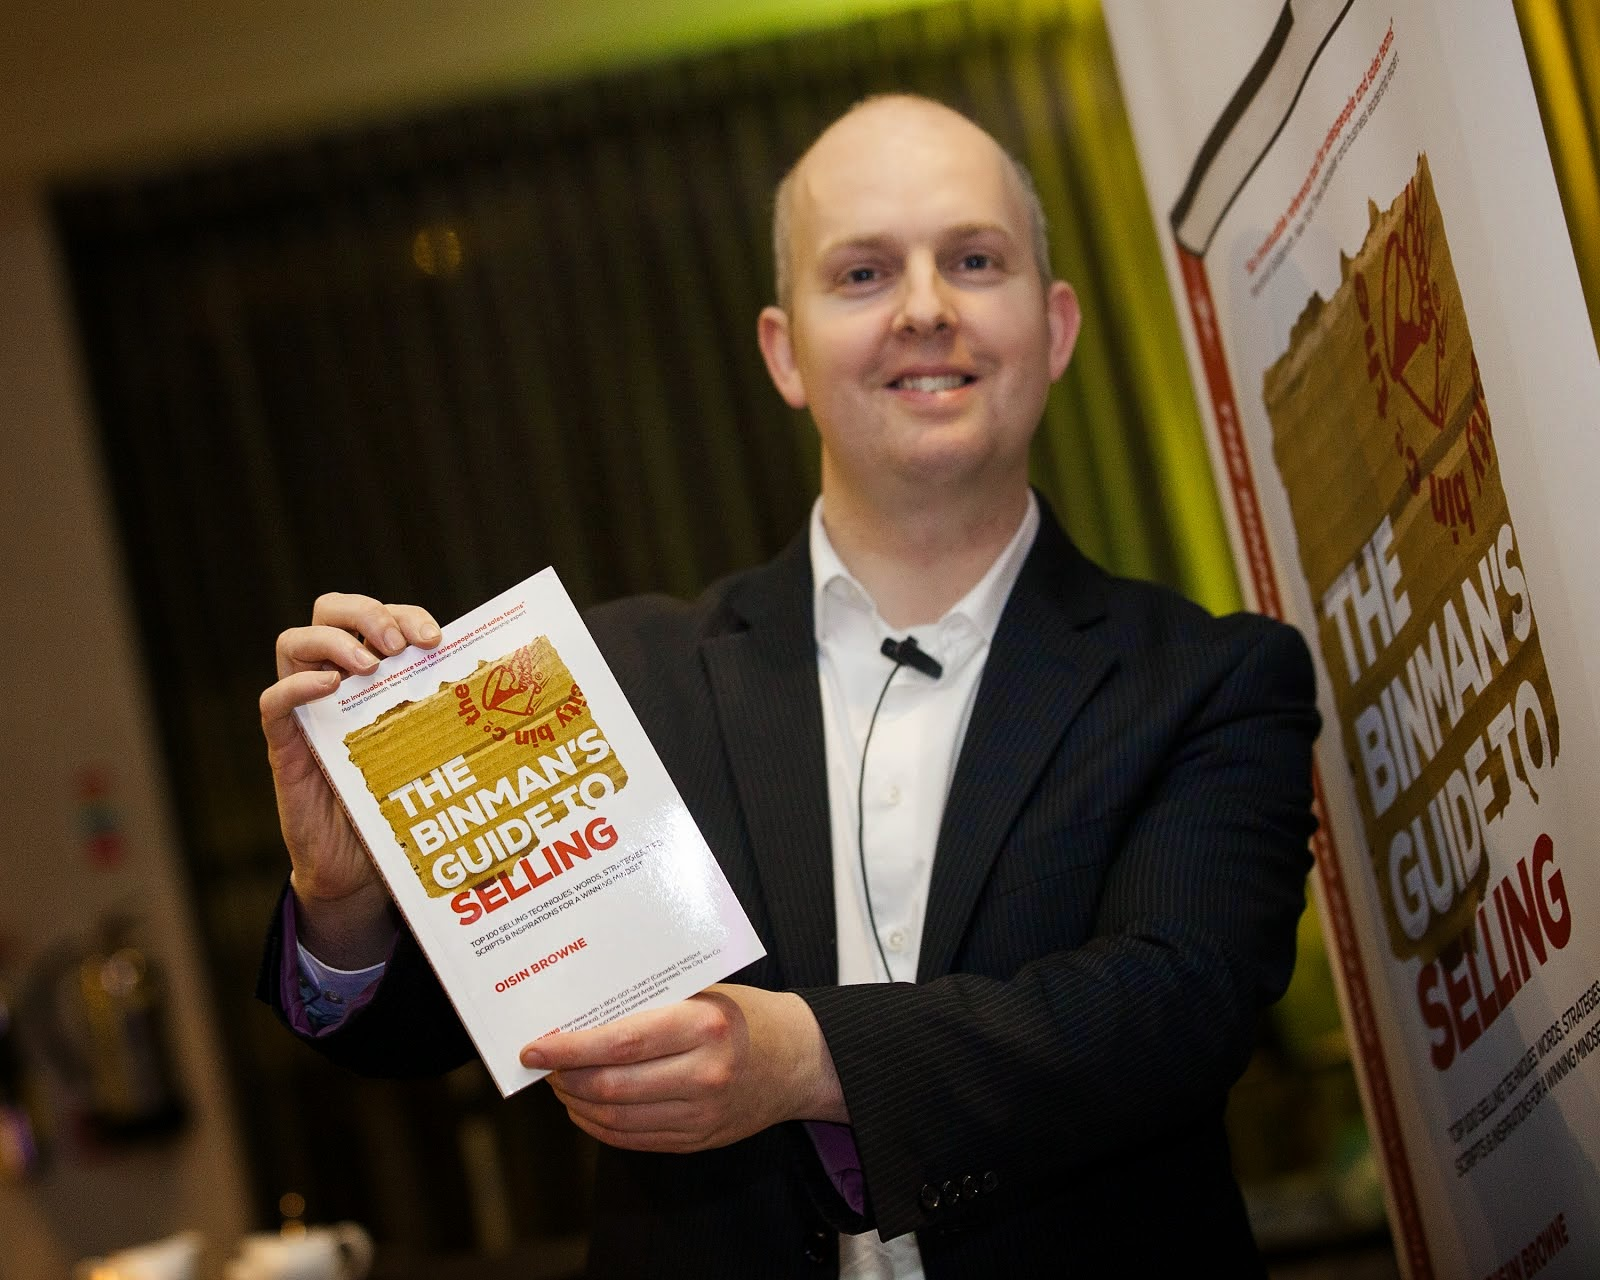 Check out Oisin's Book: The Binman's Guide to Selling